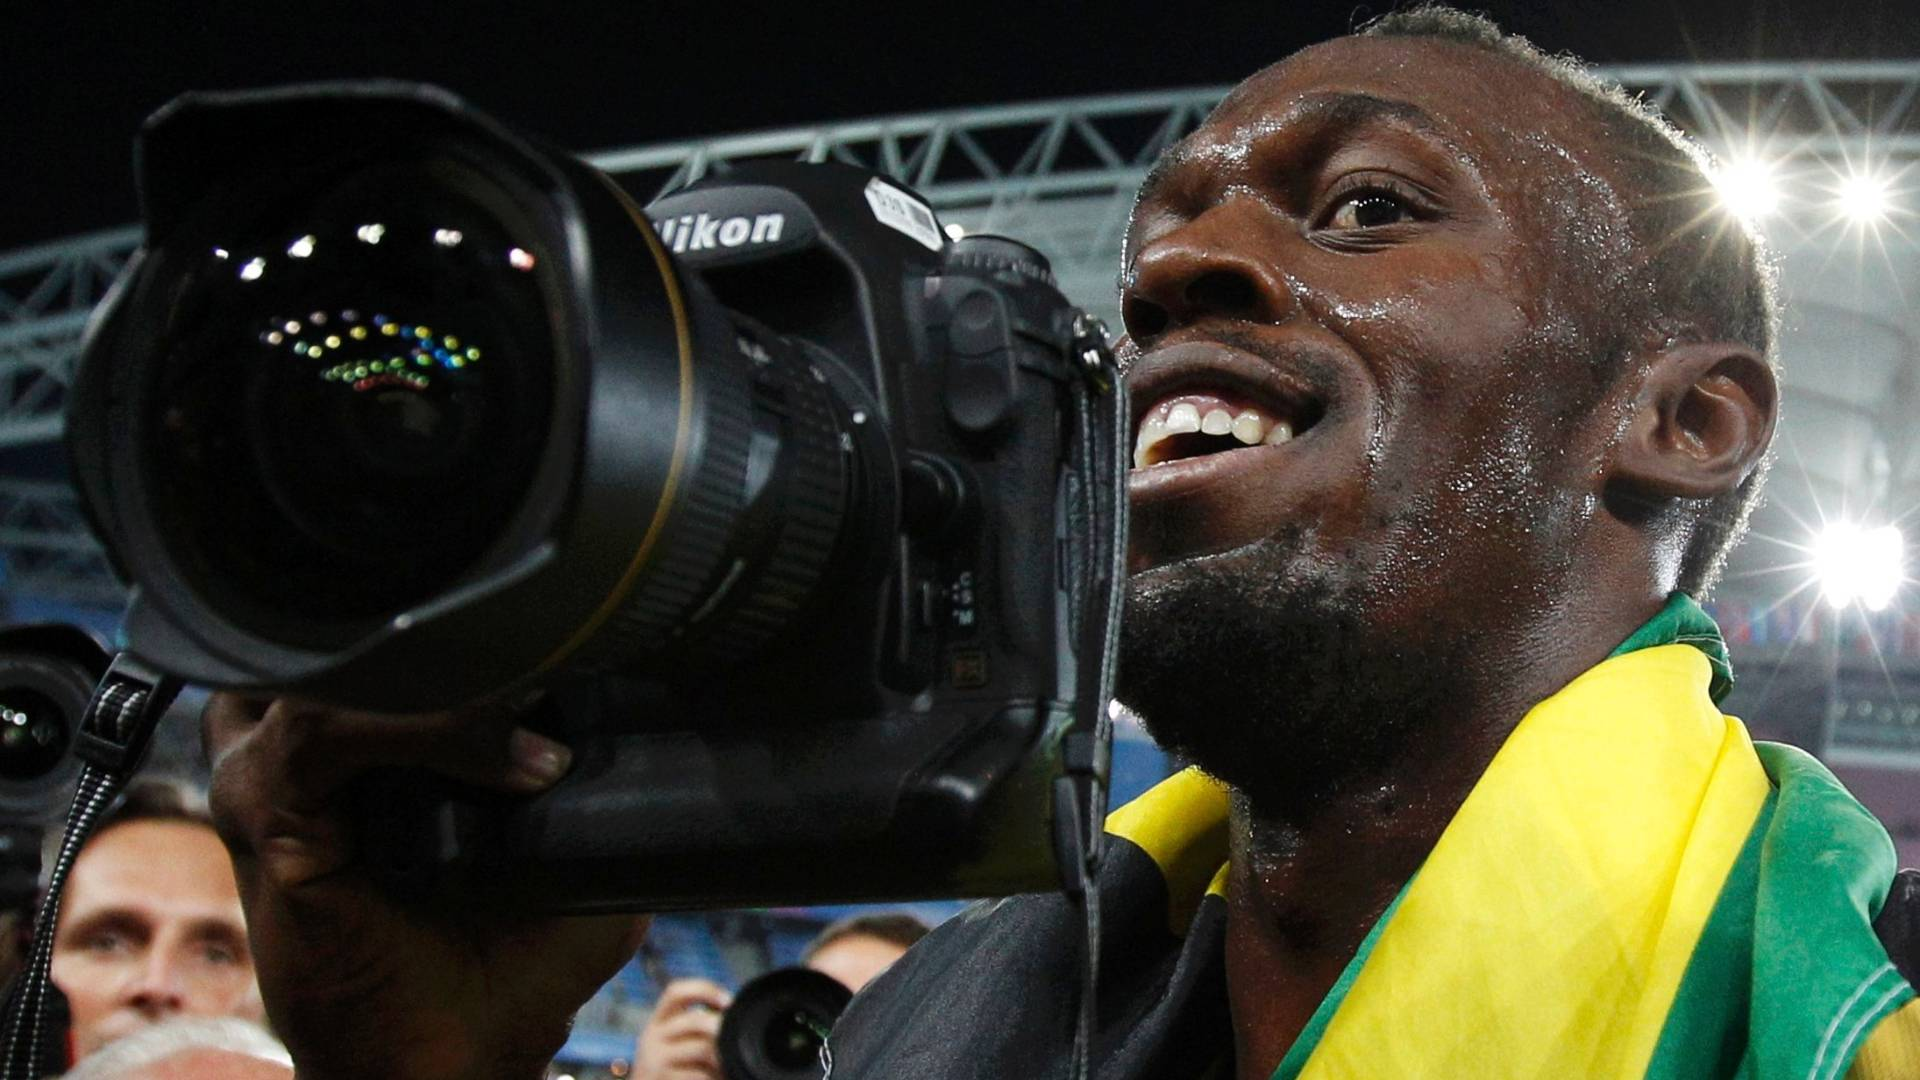 Usain Bolt pega cmera e vira fotgrafo depois de vencer os 200 m rasos no Mundial de atletismo em Daegu (03/09/2011)